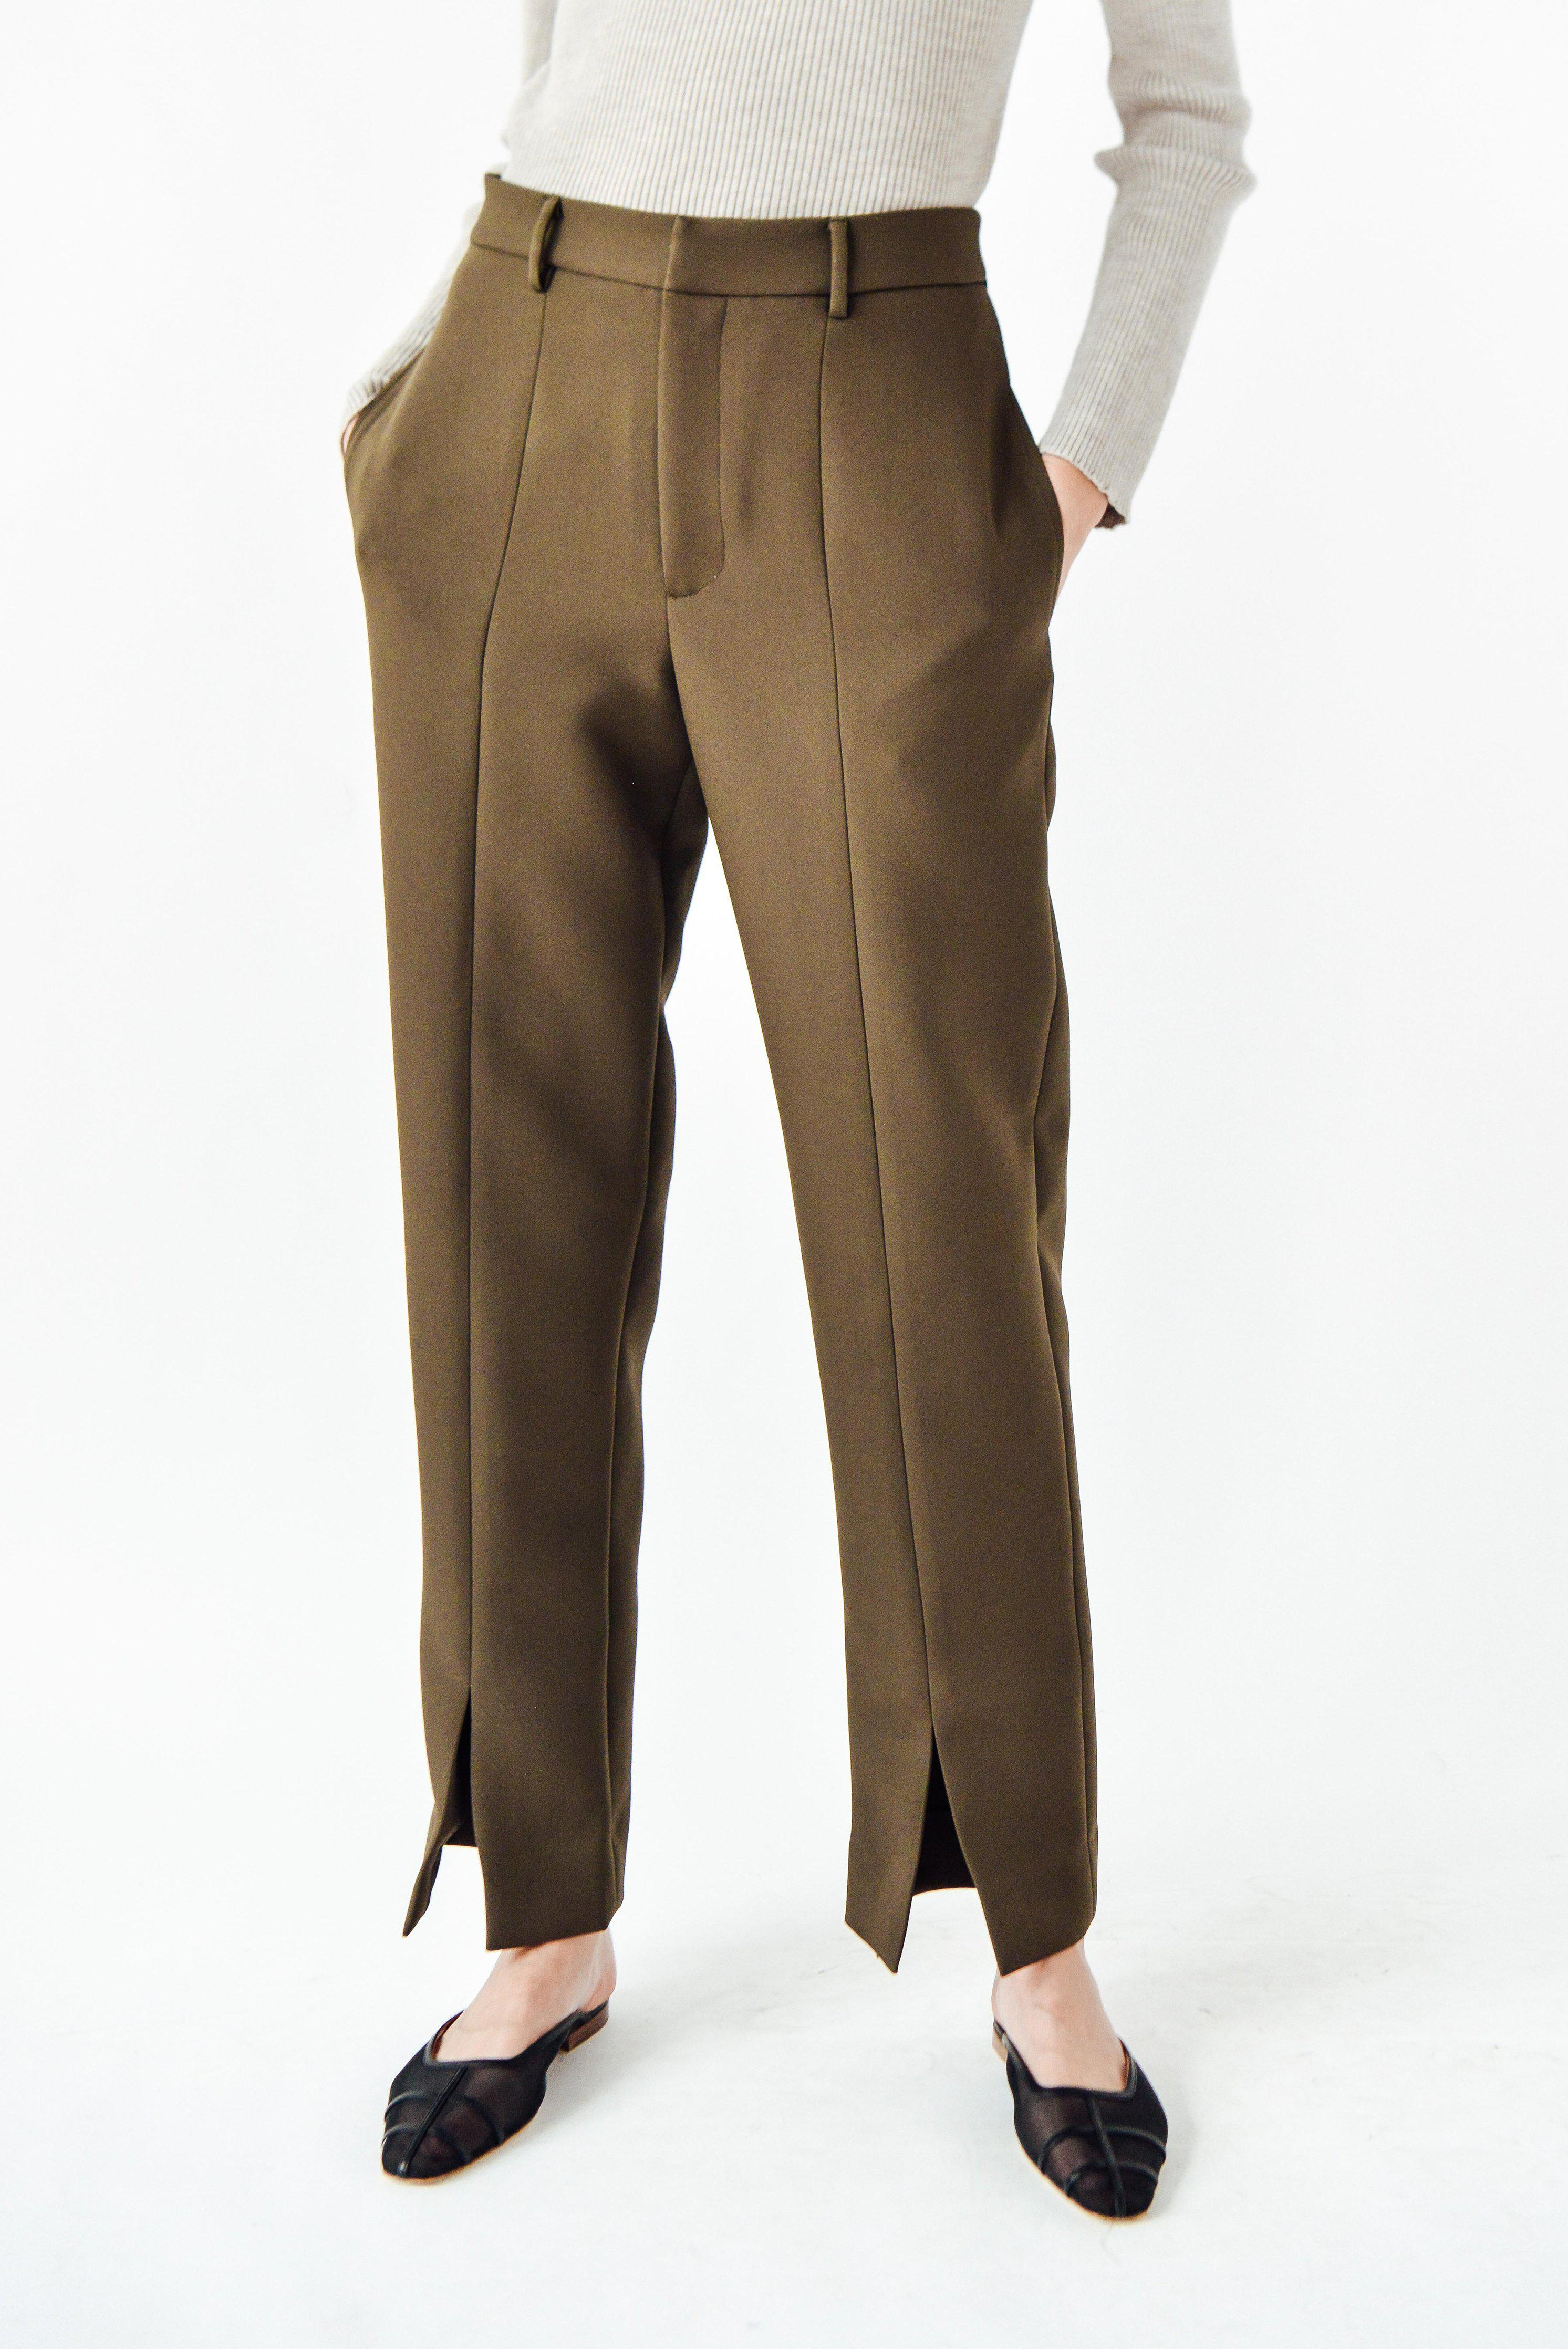 Olive Piper Pant